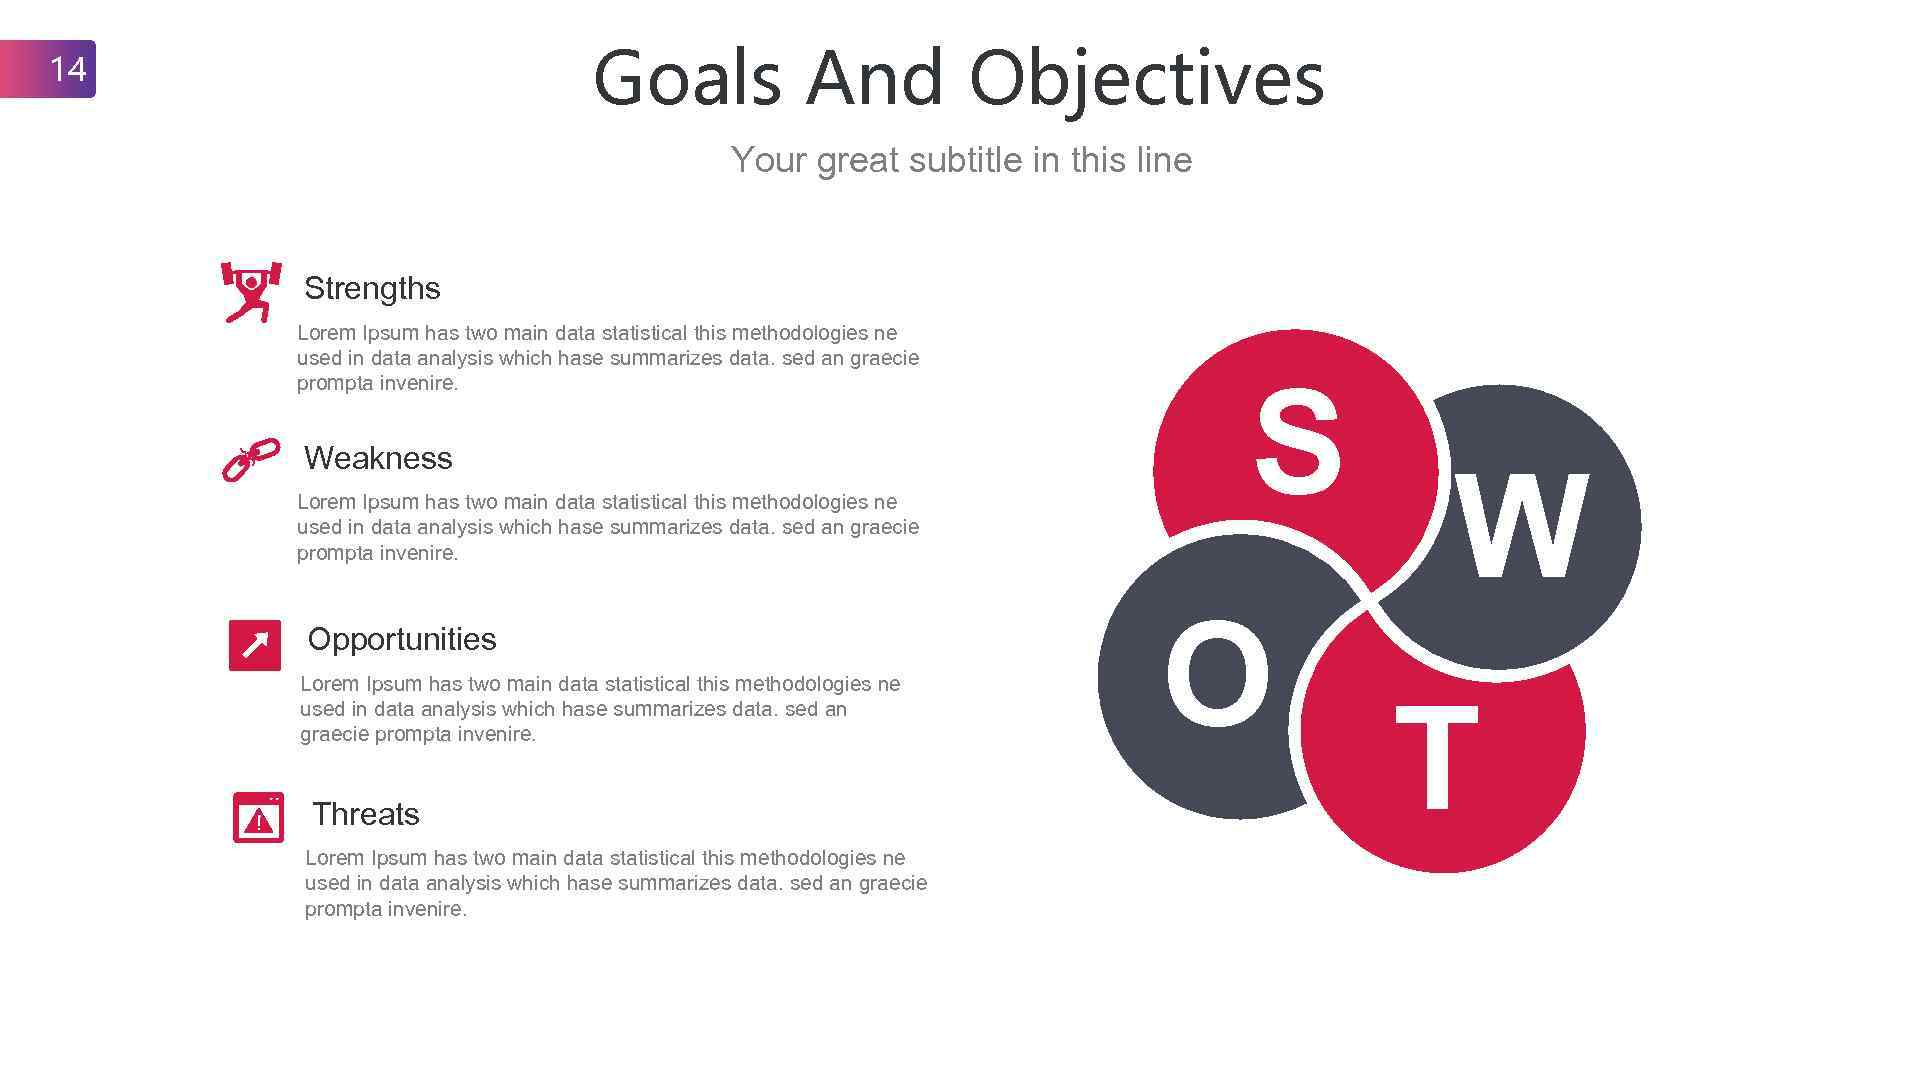 Goals And Objectives 14 Your great subtitle in this line Strengths Lorem Ipsum has